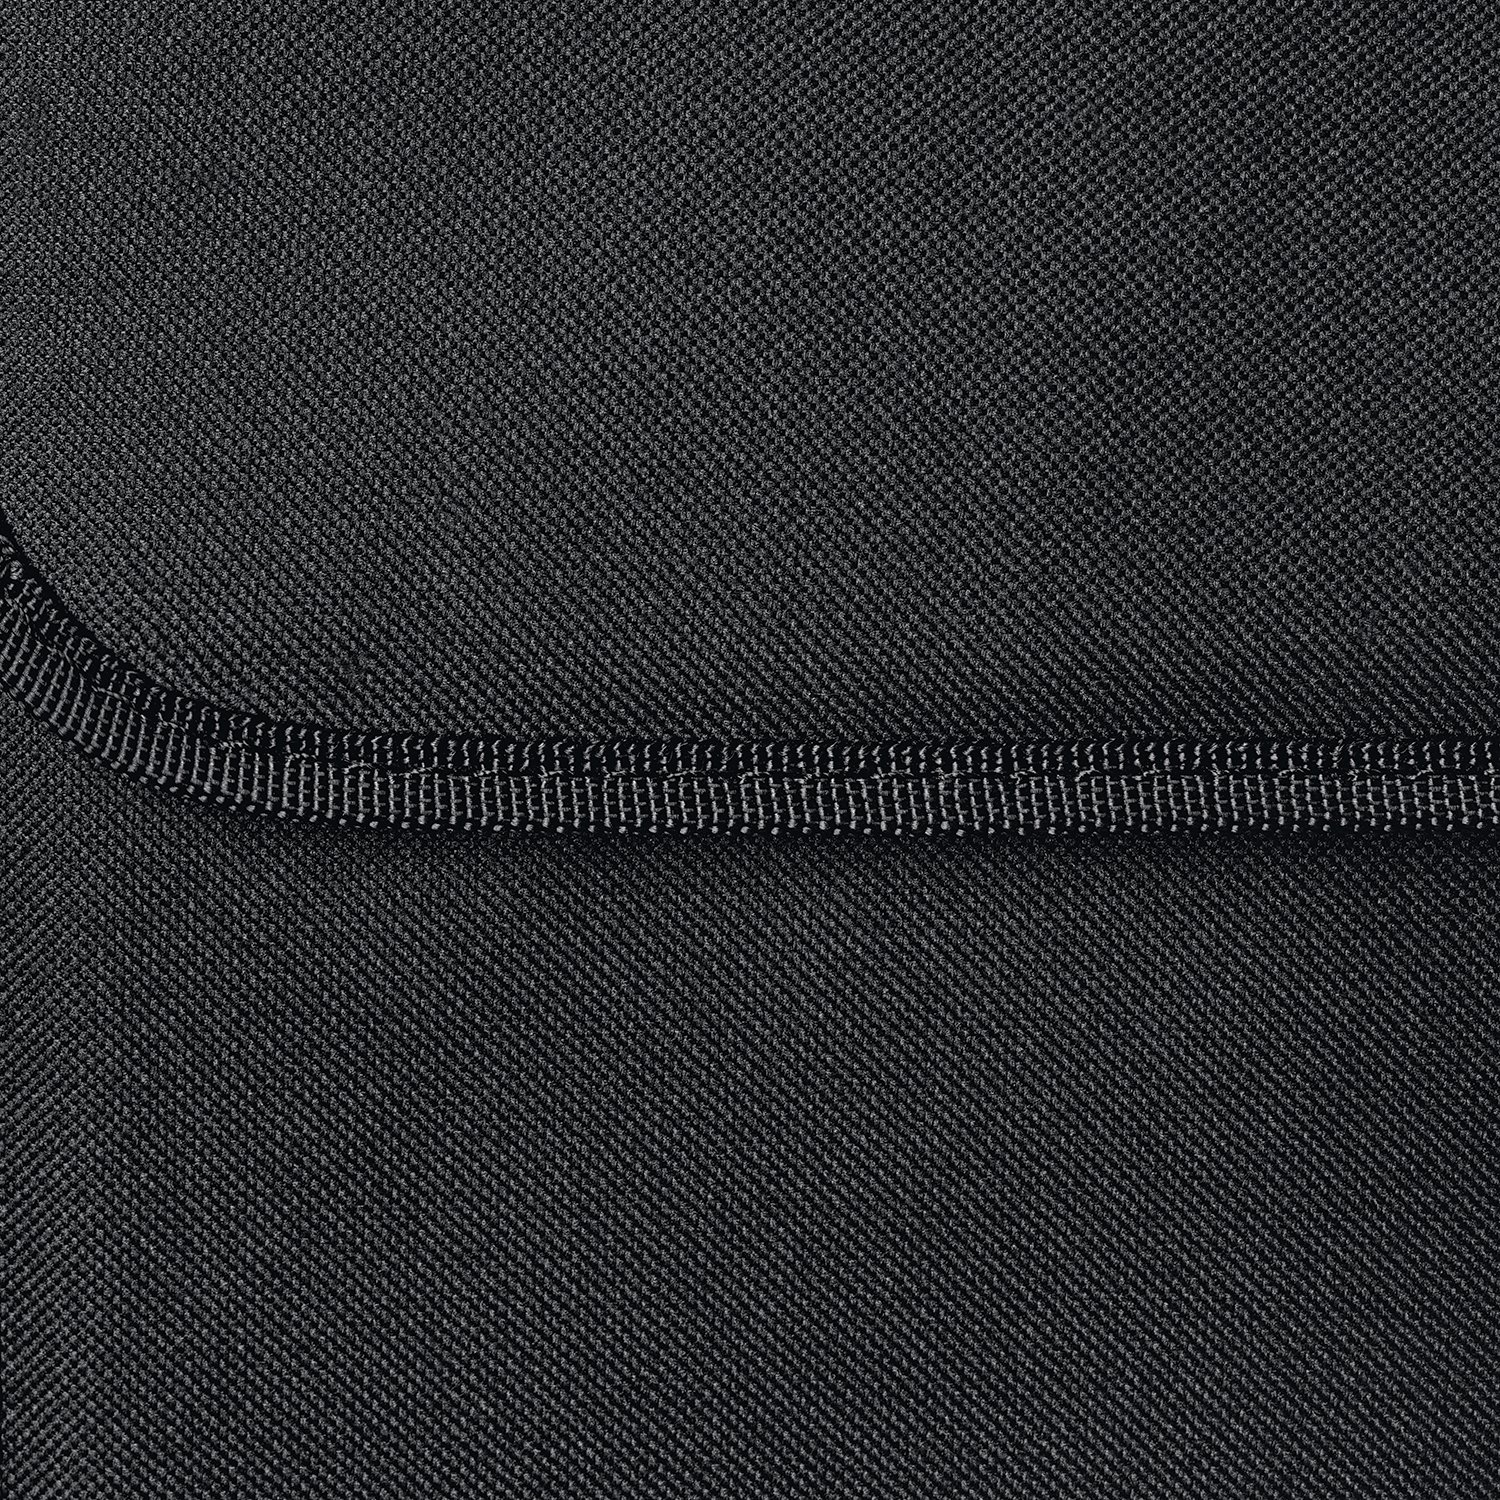 Solo Classic 16 Inch Laptop Catalog Case, Black by SOLO (Image #6)